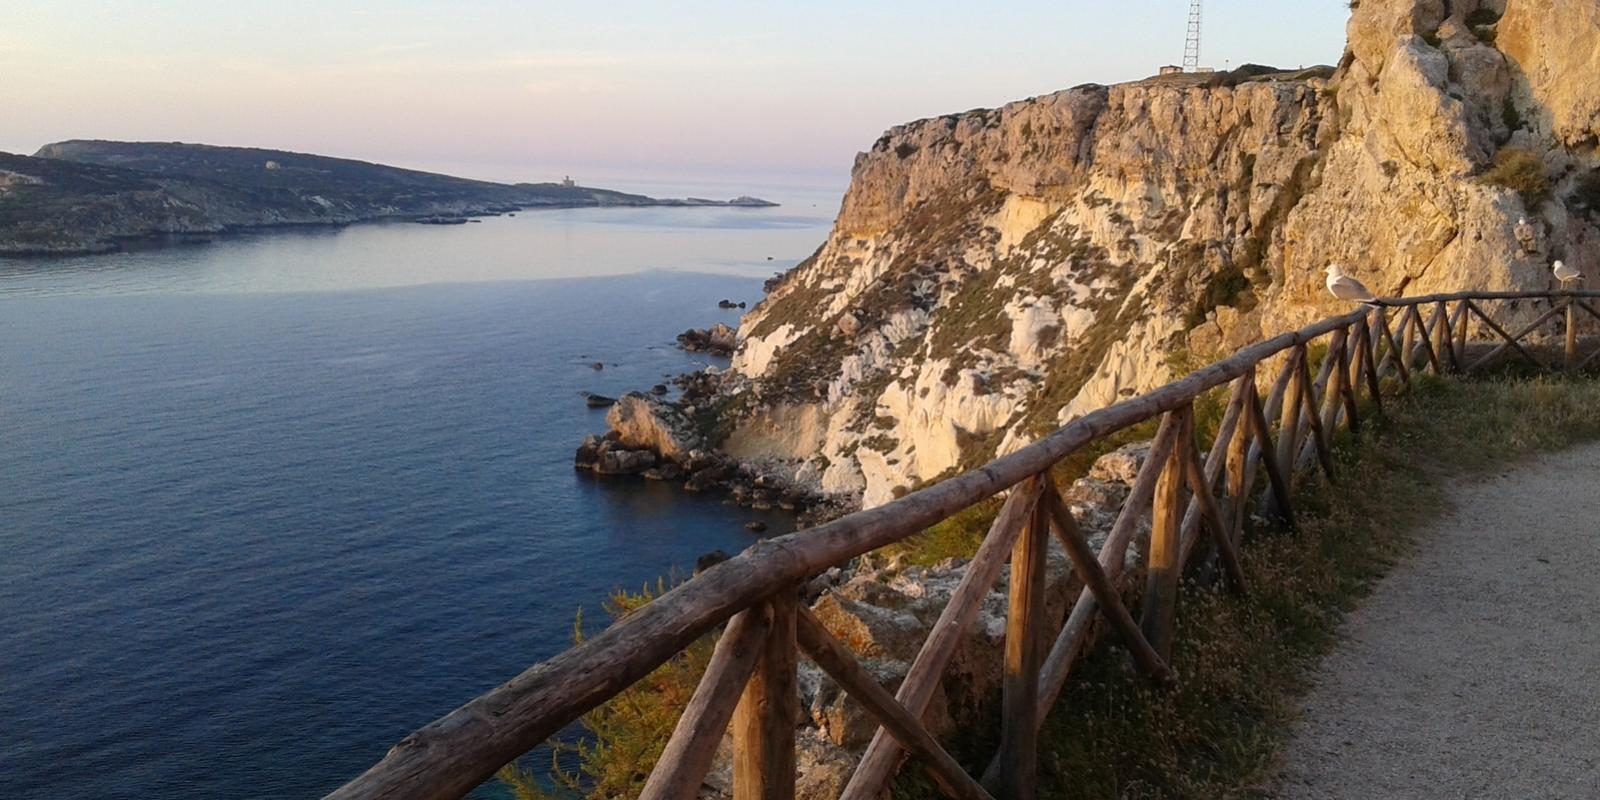 Weekend in the Protected Marine Area of the Tremiti Islands